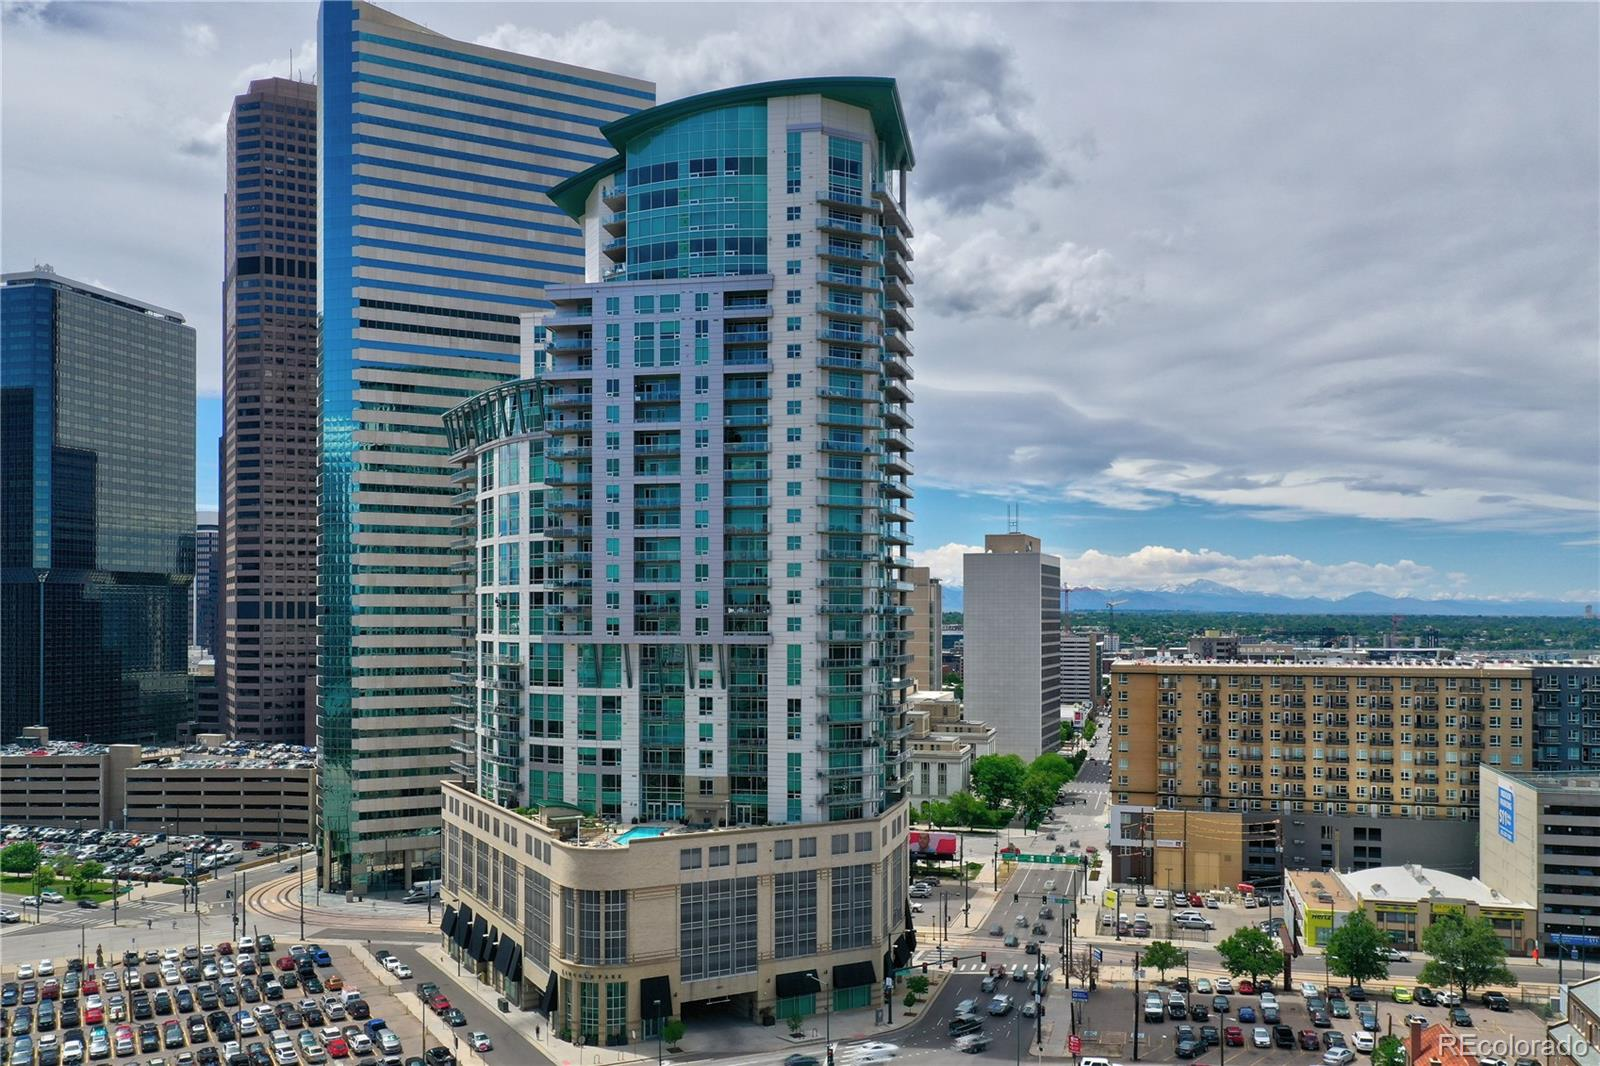 20K Price Drop Seller's Loss Your Gain!  Ready To Experience Denver's Amazing Skyline & Feel A Part Of The Energy Our Great City Offers All While Living In One Of Denver's Safest & Most Secure Building's?  Then This Immaculate 1 Bed 812 SF Condo Located In One Lincoln Park Might Be For You*Lowest Priced Unit In Building!  Downtown will be fully open in the near future & this is your opportunity to get a deal while the opportunity exists*Perfect for 2nd home or lock and leave living also*Enjoy Breathtaking Views Of Denver's Cityscape & Full Front Range Mountain Views From Every Window In This 21st Floor Unit That Features A Large Gourmet Kitchen w/ Slab Granite Counters, Stainless Appliances, Gas Stove & Enormous Walkin Pantry & Laundry Space*The Open Light Filled Design Is Perfect For Entertaining*Watch Sunsets Or The Sun Rising As It Hits The Mountains While Sipping On A Glass of Wine or Morning Jo From Your Spacious Balcony*Wake Up Every Morning To Spectacular Views From The Master Suite & Get Ready In Your Luxurious 5 Piece Bath w/ Dual Sinks, Granite Counters & HUGE Walkin Closet With An Included Elfa Custom Organization System*One Lincoln Park Has So Many Amenities You May Never Leave Like A Full Time Concierge To Receive Guests & Packages, State Of The Art Fitness & Weight Room, Clubhouse That Can Be Rented For Special Events & A Fabulous 7th Floor Pool Area*Available Guest Suites Can Be Rented For Just $80/night*This Unit Includes A Covered Parking Garage Space PLUS 2 Storage Units To Keep Your Bikes, Xmas Decor & More*Denver's Best Location To Get Anywhere Downtown Like Light Rail Just Across The Street, Bars & Restaurants Minutes Away & Coors Field a Short Walk*You'll Also Enjoy Quick Commutes To DIA or the Mountains*One Lincoln Park Has It All For The Person Who Wants It All